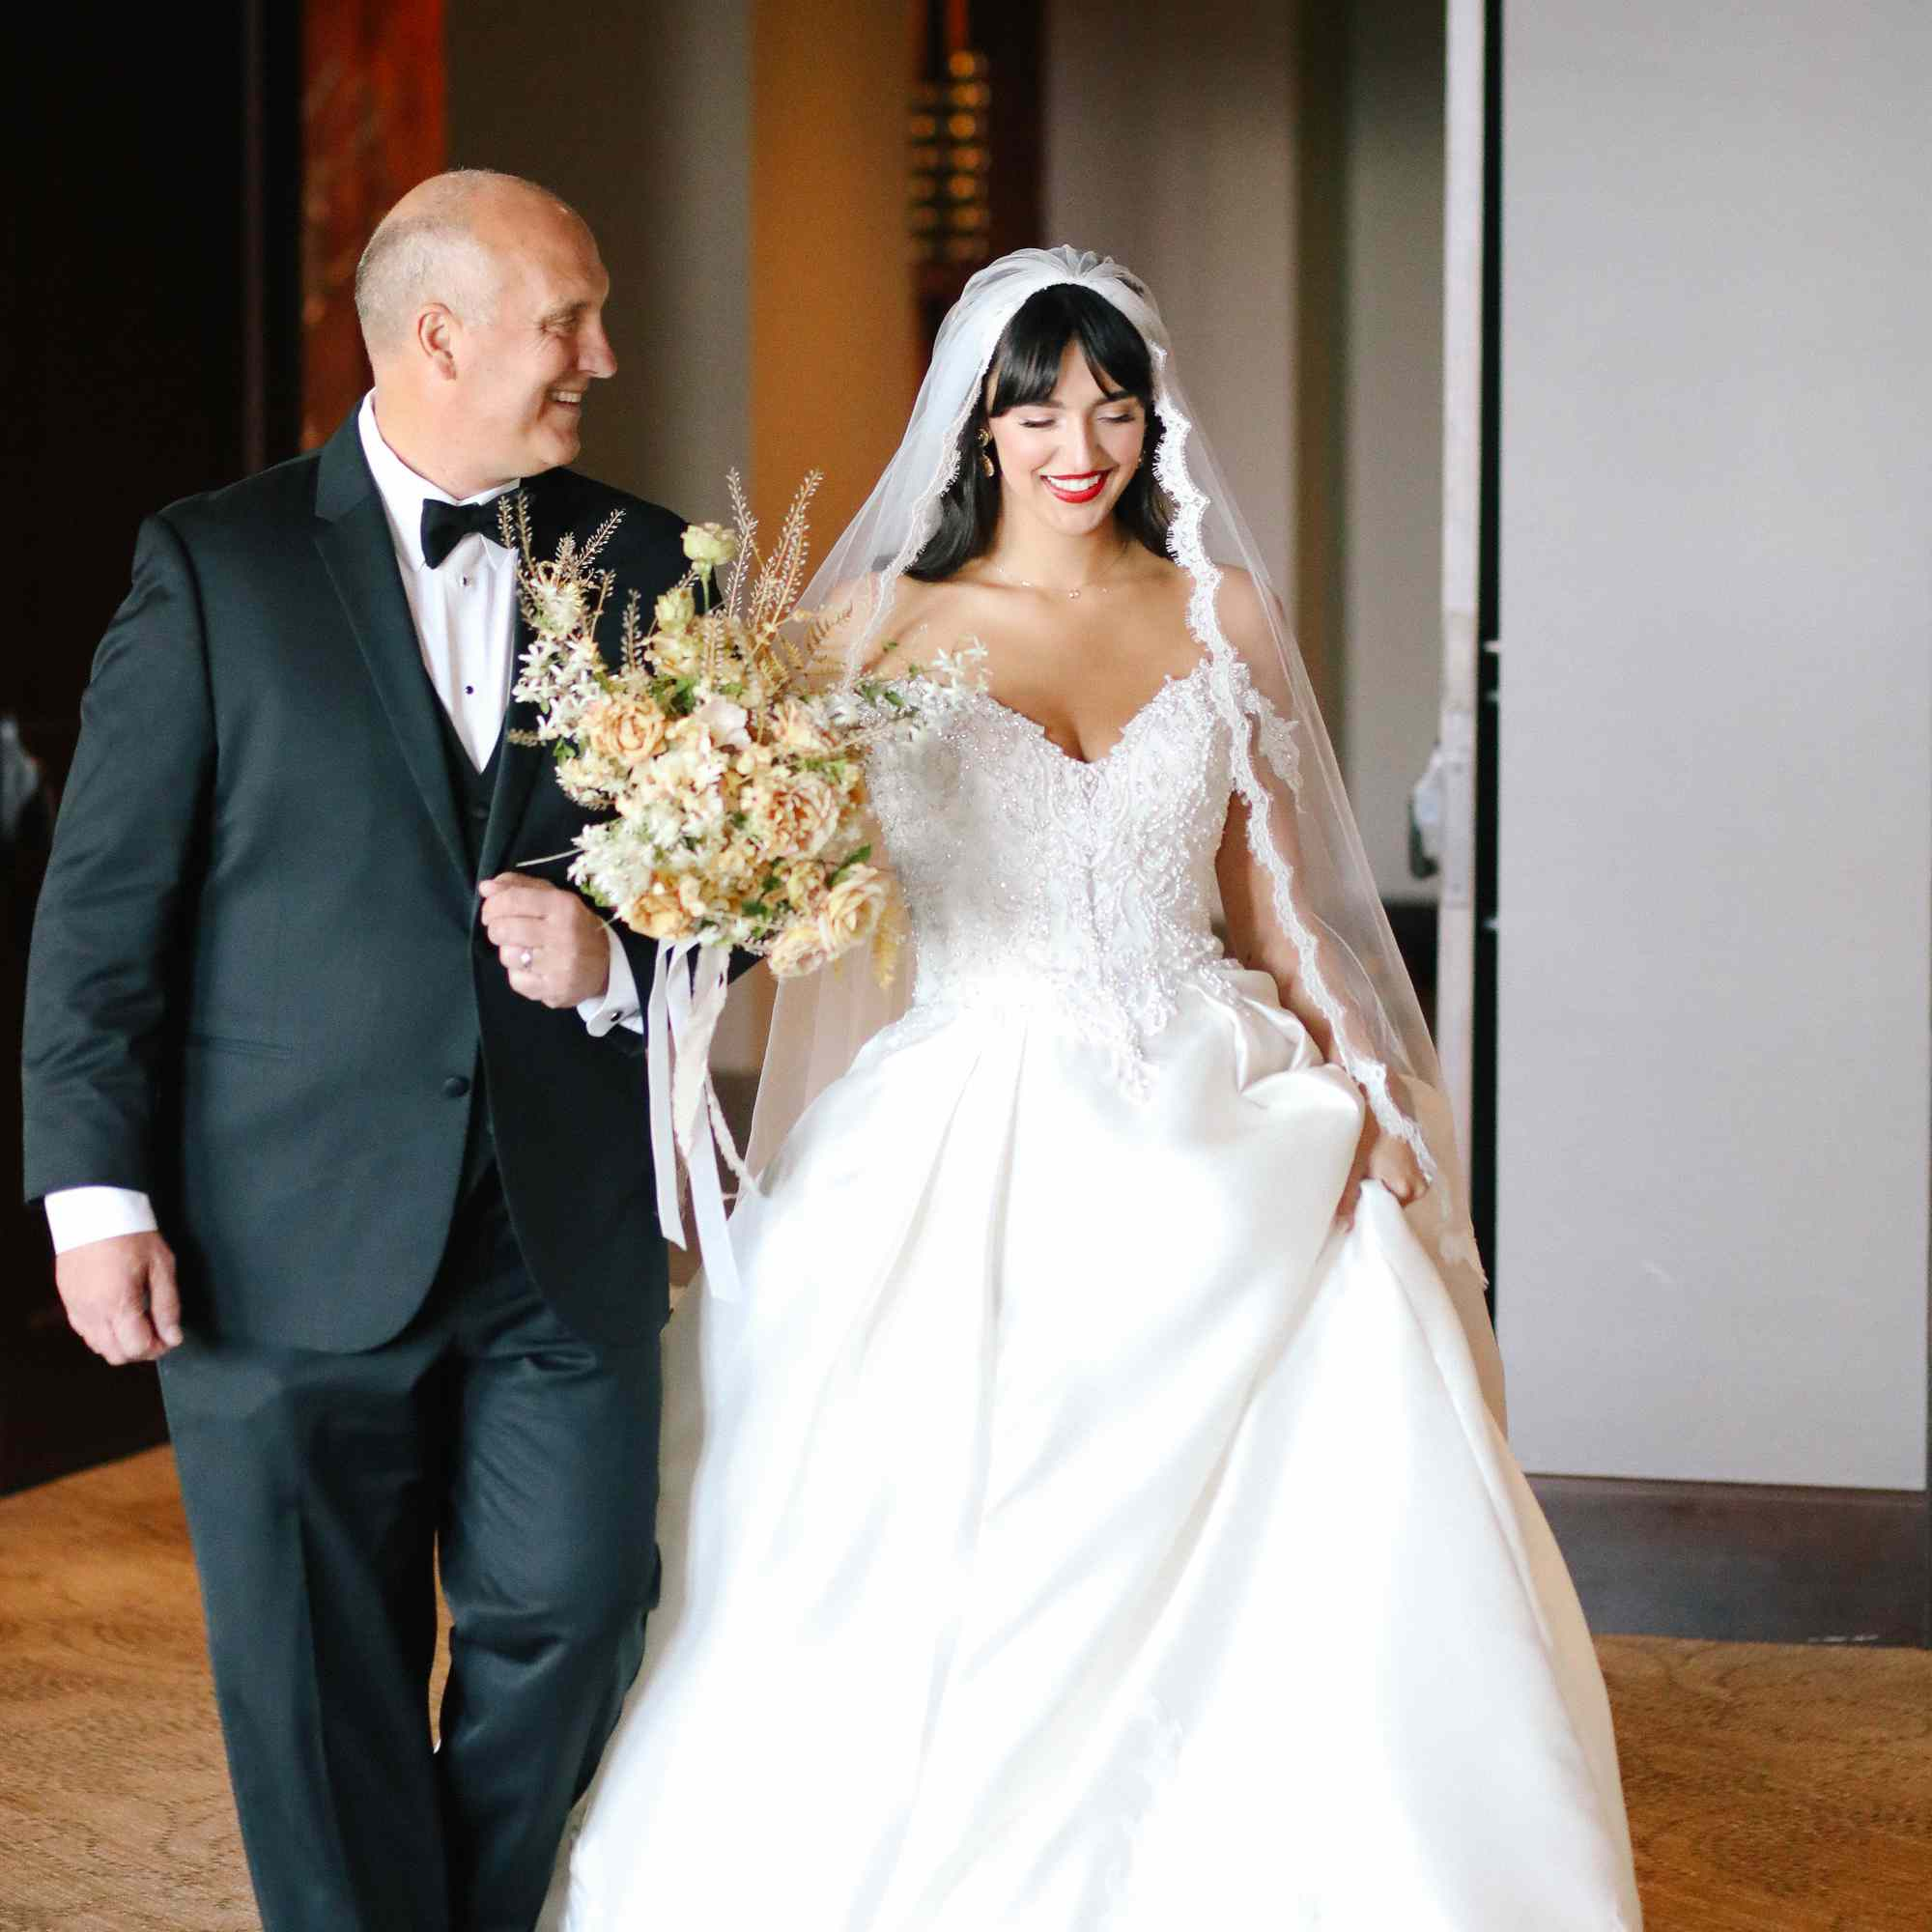 savannah and riker wedding, bride with father of the bride